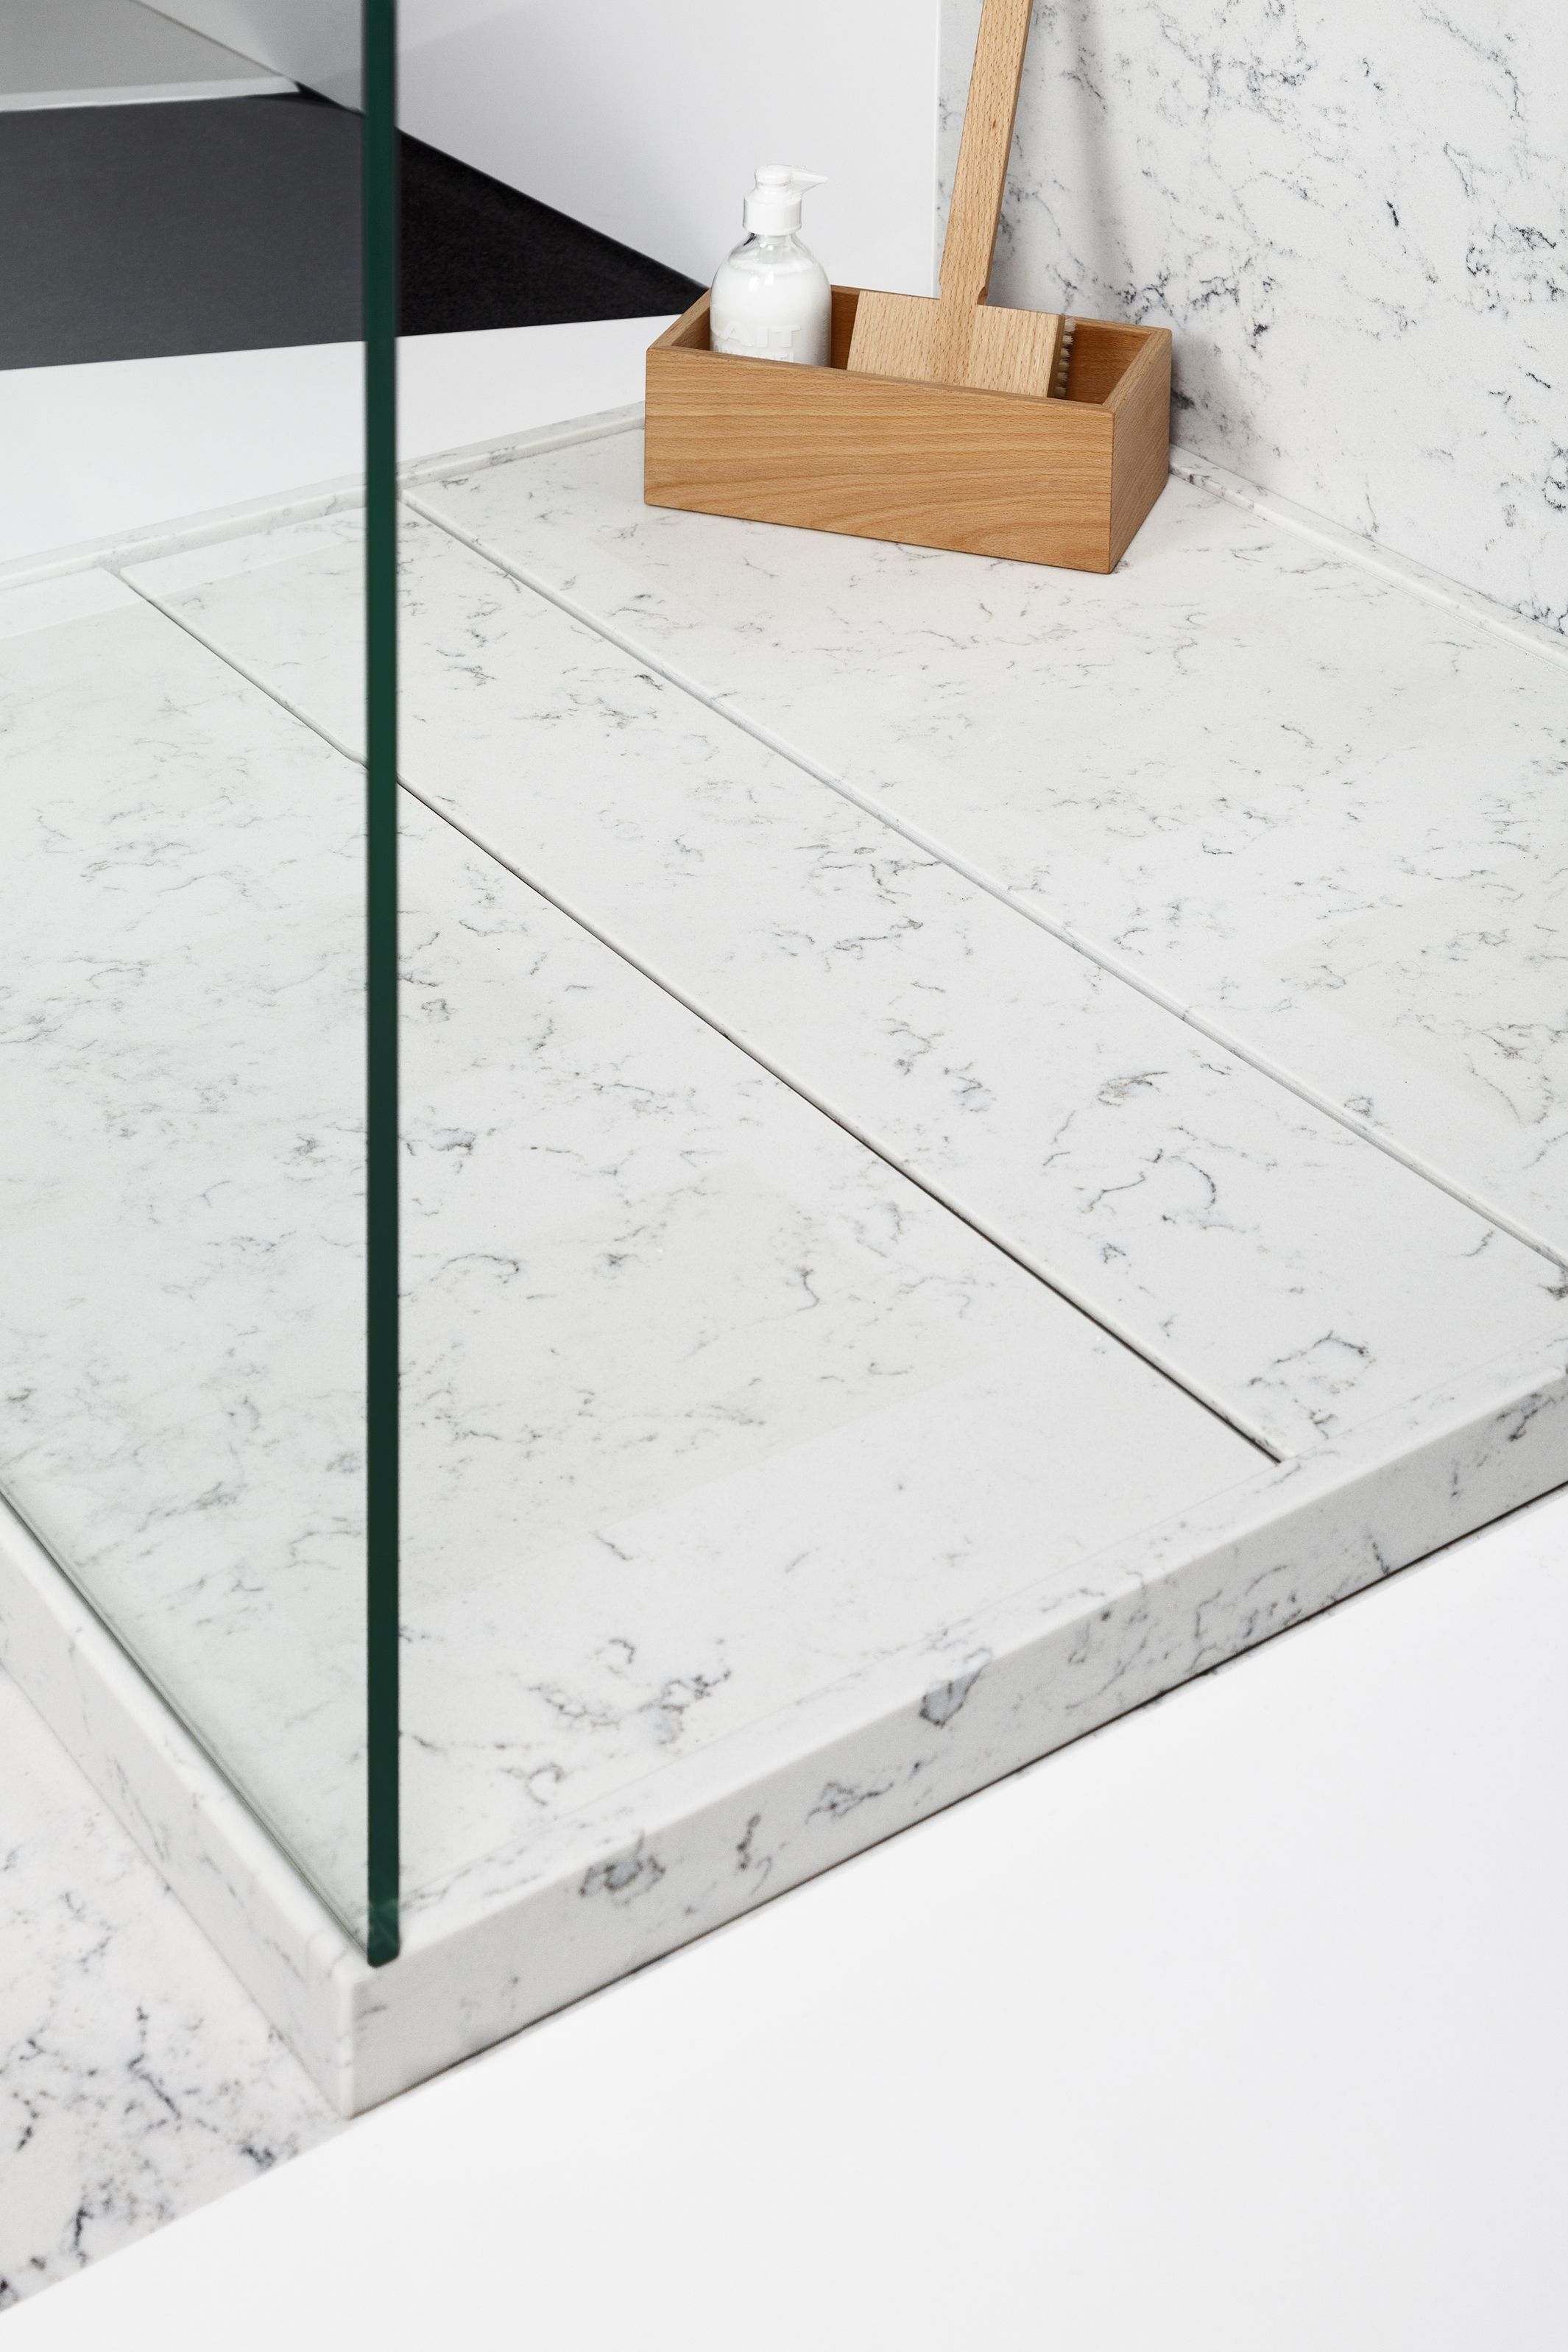 Beau Create The Bathroom Of Your Dreams With The Silestone Bathroom Collection |  Cosentino News Blog United Kingdom And Ireland